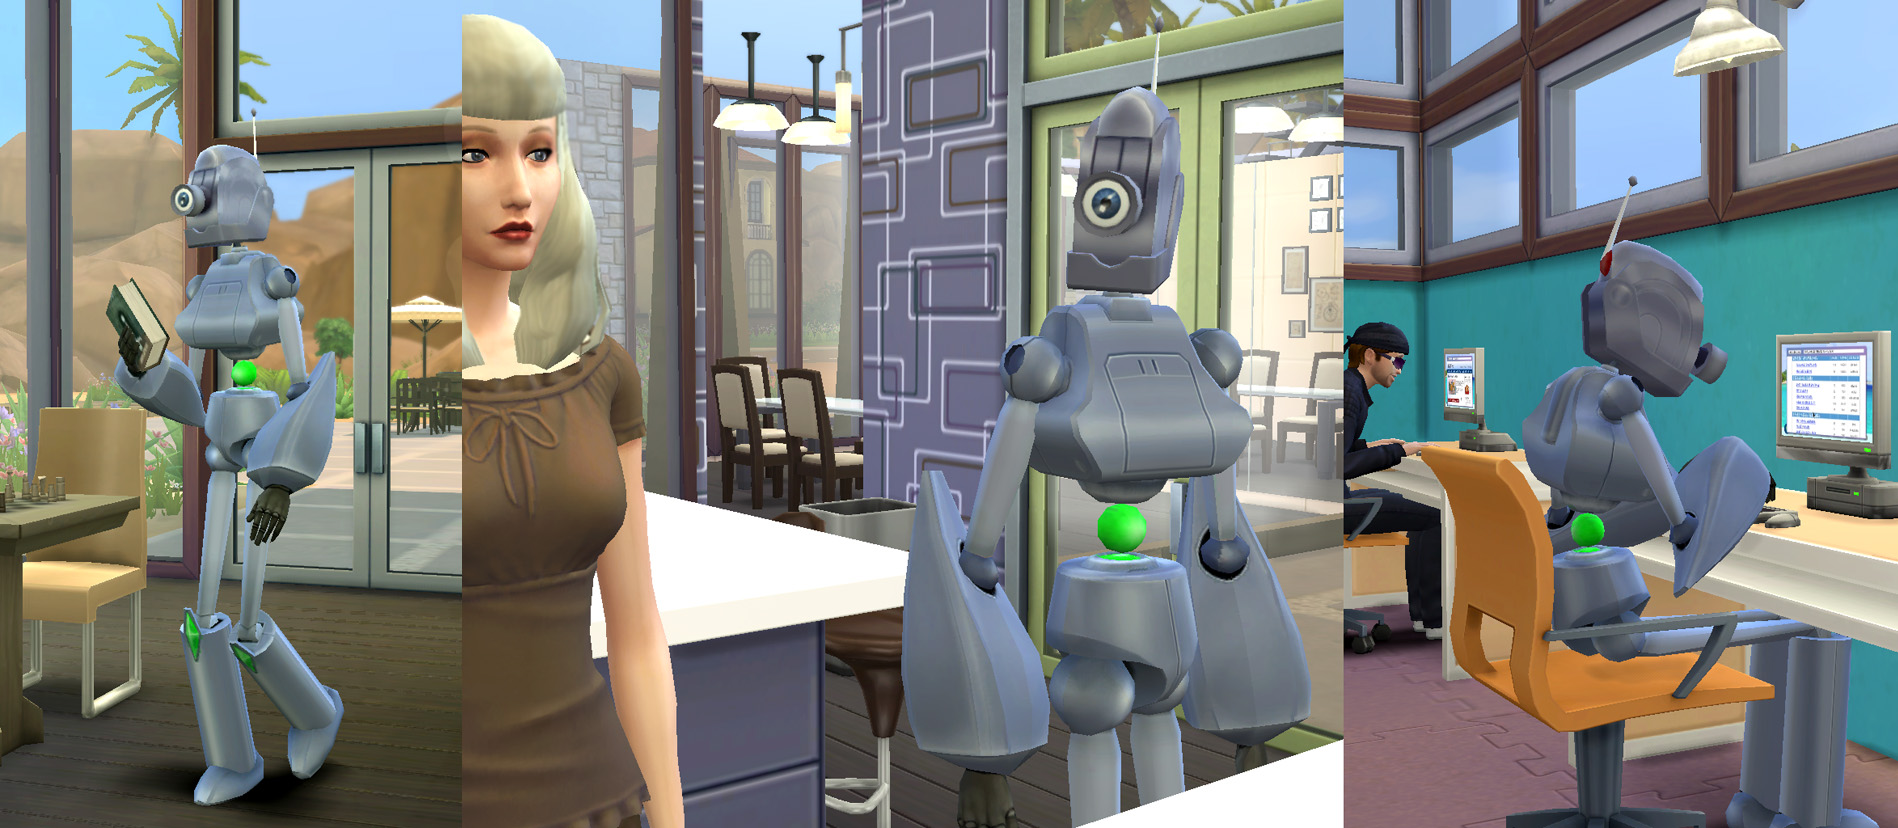 Servo robots from Sims by Esmeralda